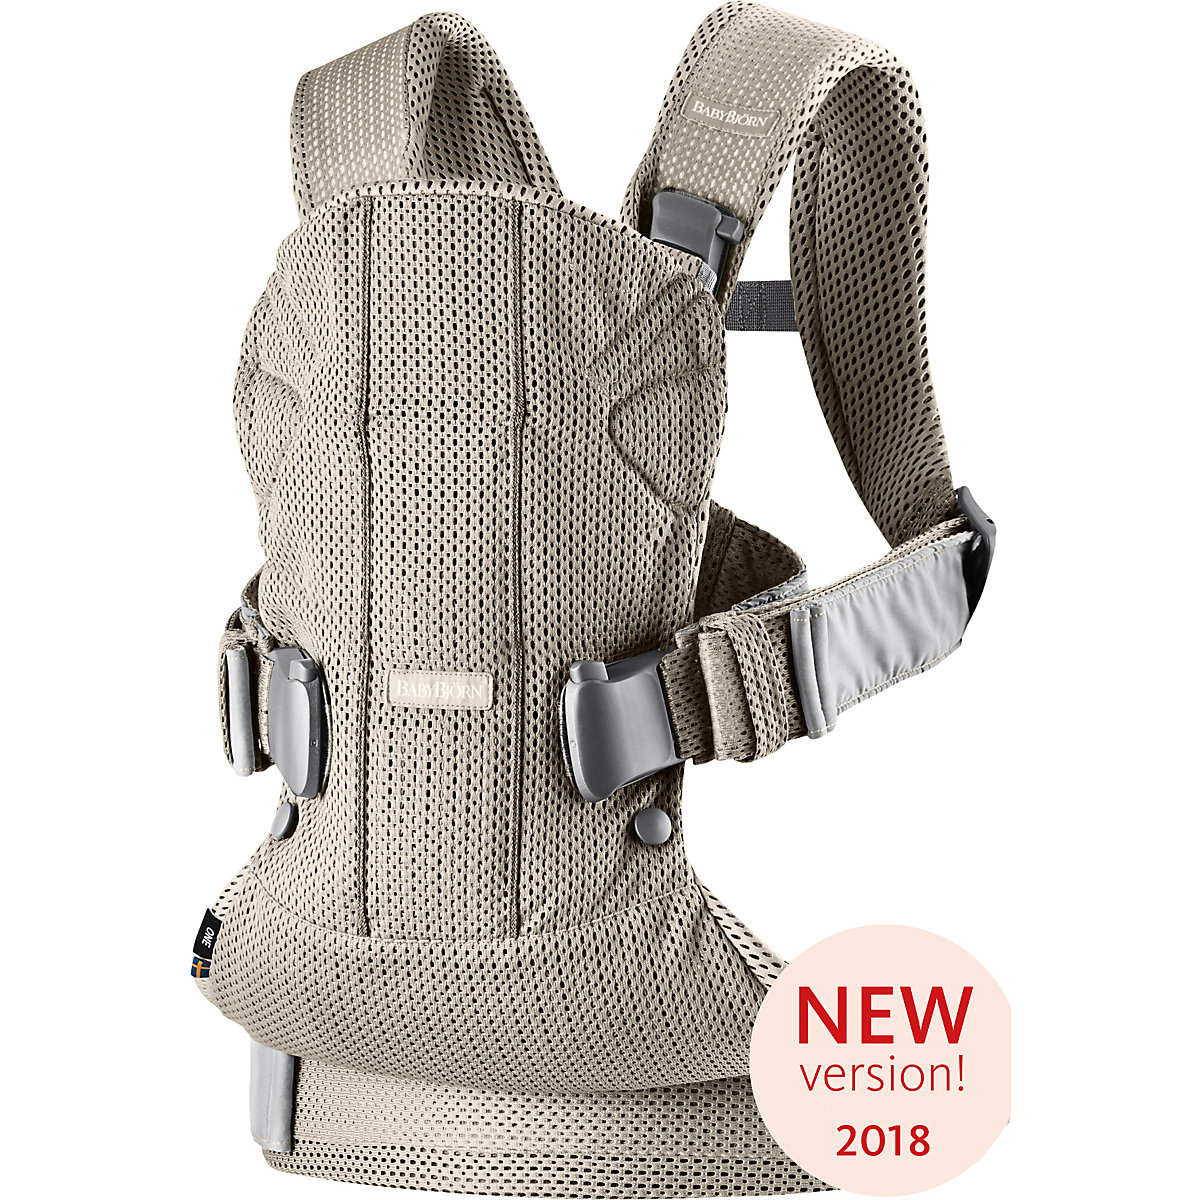 BABYBJORN Backpacks & Carriers 7994435 backpack carrier slings kangaroo for boy and girl school bags grizzly 10521132 schoolbag backpack orthopedic bag for boy and girl animals flowers